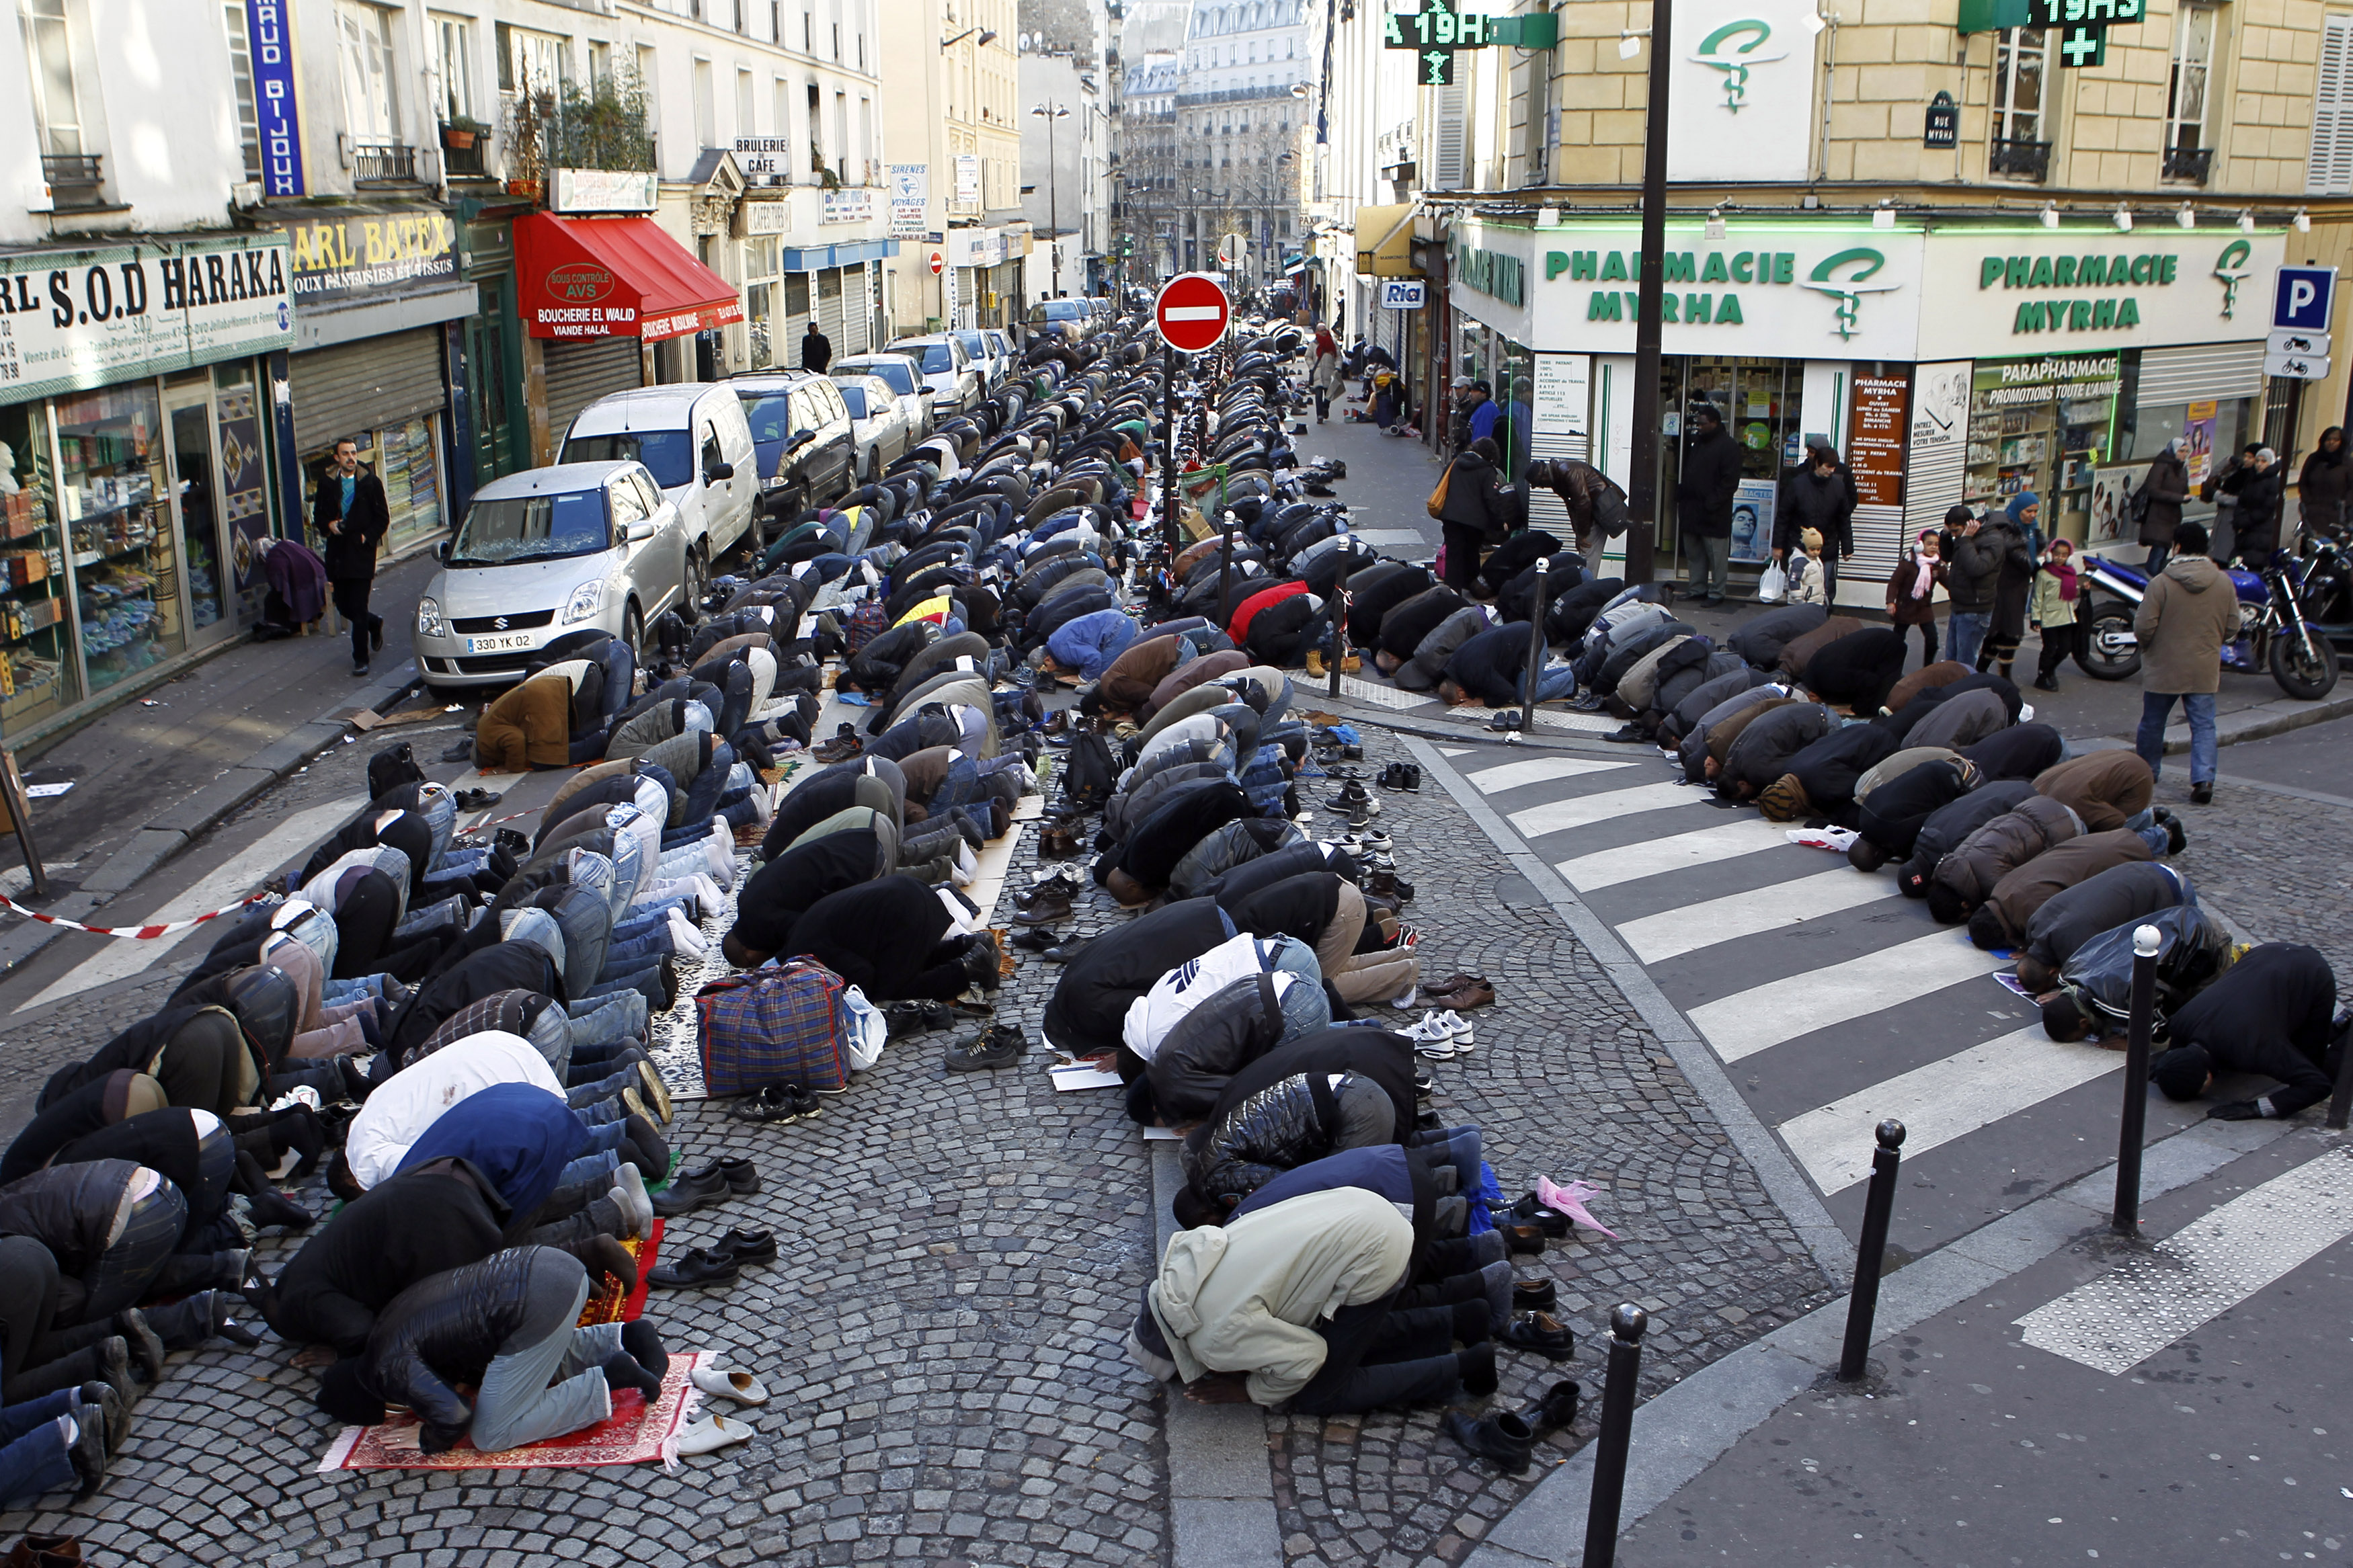 https://www.brookings.edu/wp-content/uploads/2019/05/friday_prayers_paris001.jpg